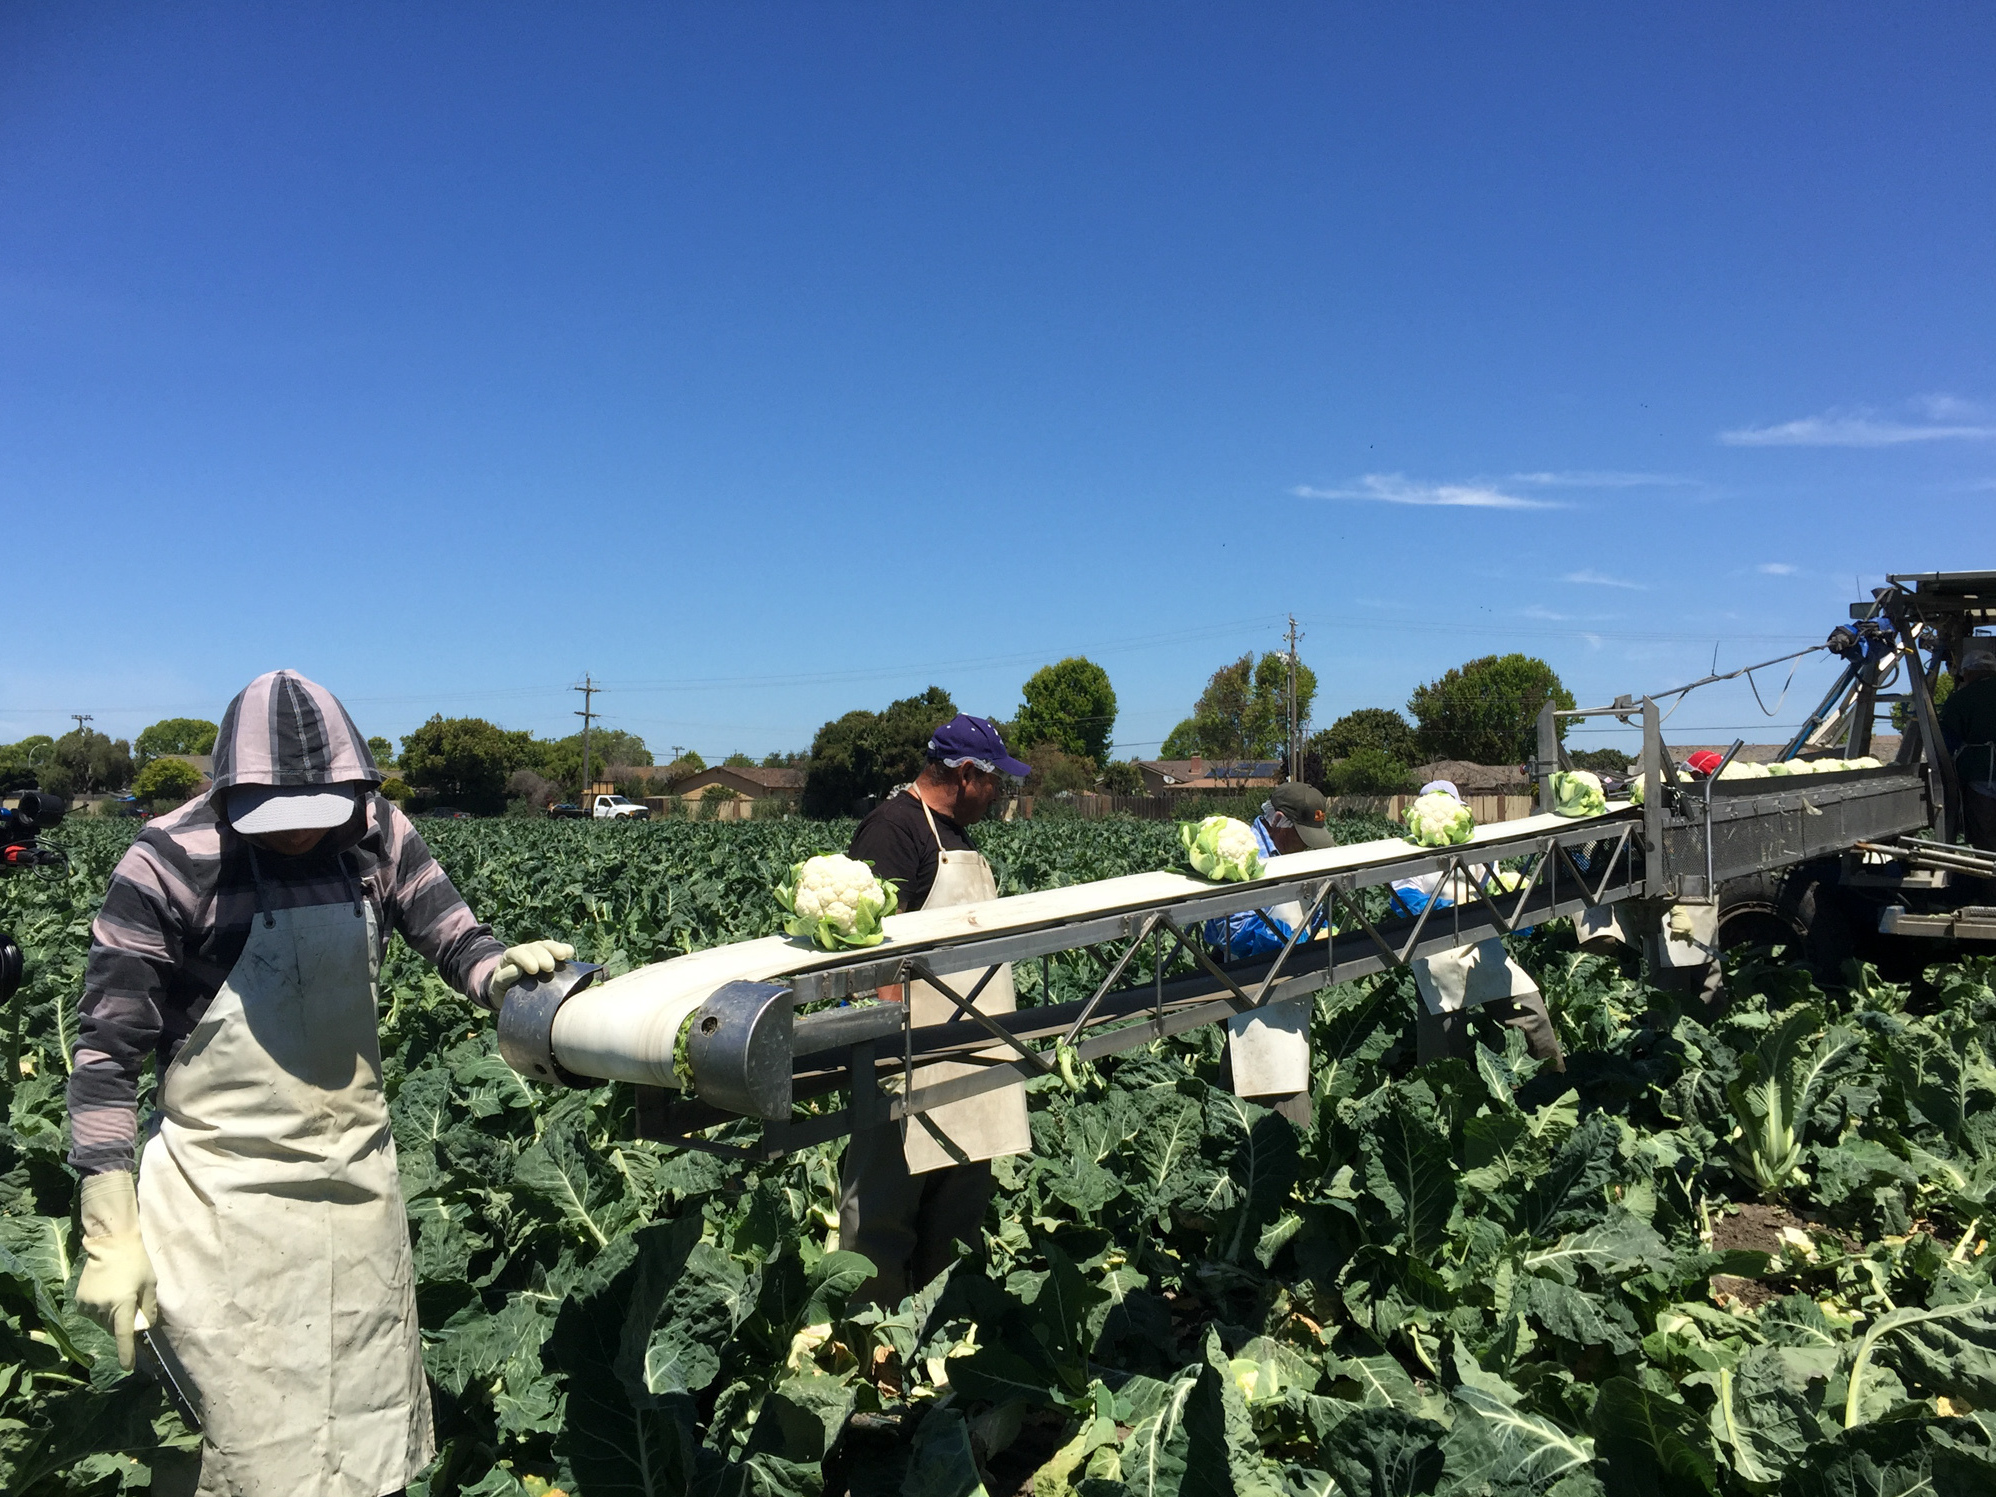 Cauliflower on the conveyor belt at Ocean Mist Farms in Salinas Valley, Calif.